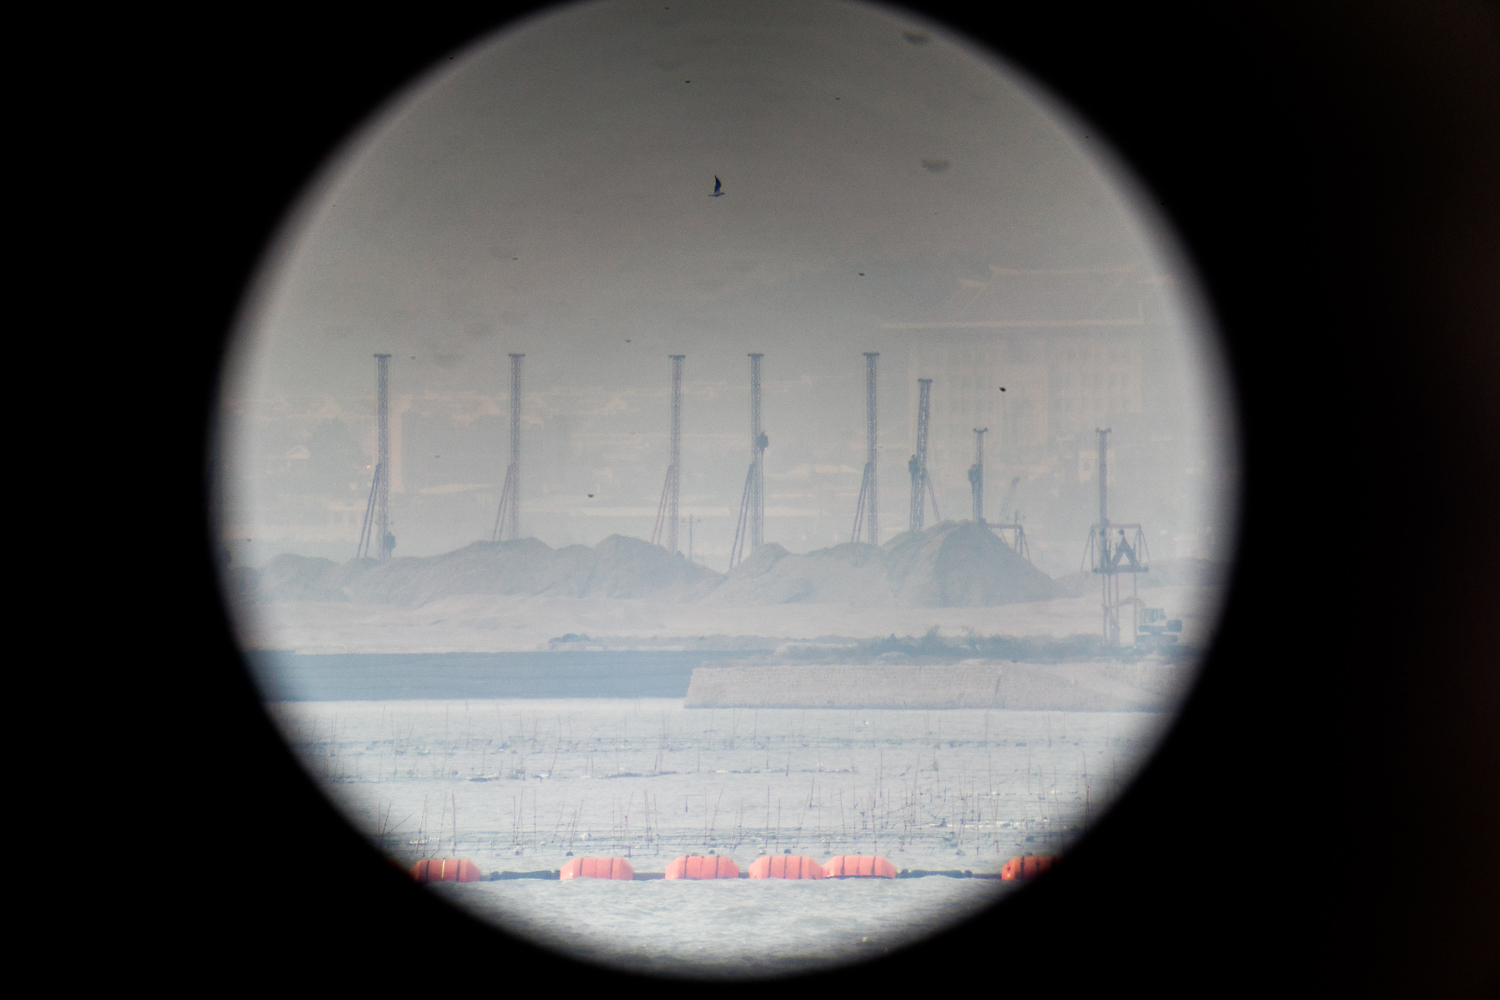 Viewed through binoculars from the Mashan Observation Station on Kinmen, pile drivers rise above sand dunes on China's Dadeng Island, the closest point in mainland China to Kinmen, and the proposed site of nearby Xiamen's new airport.